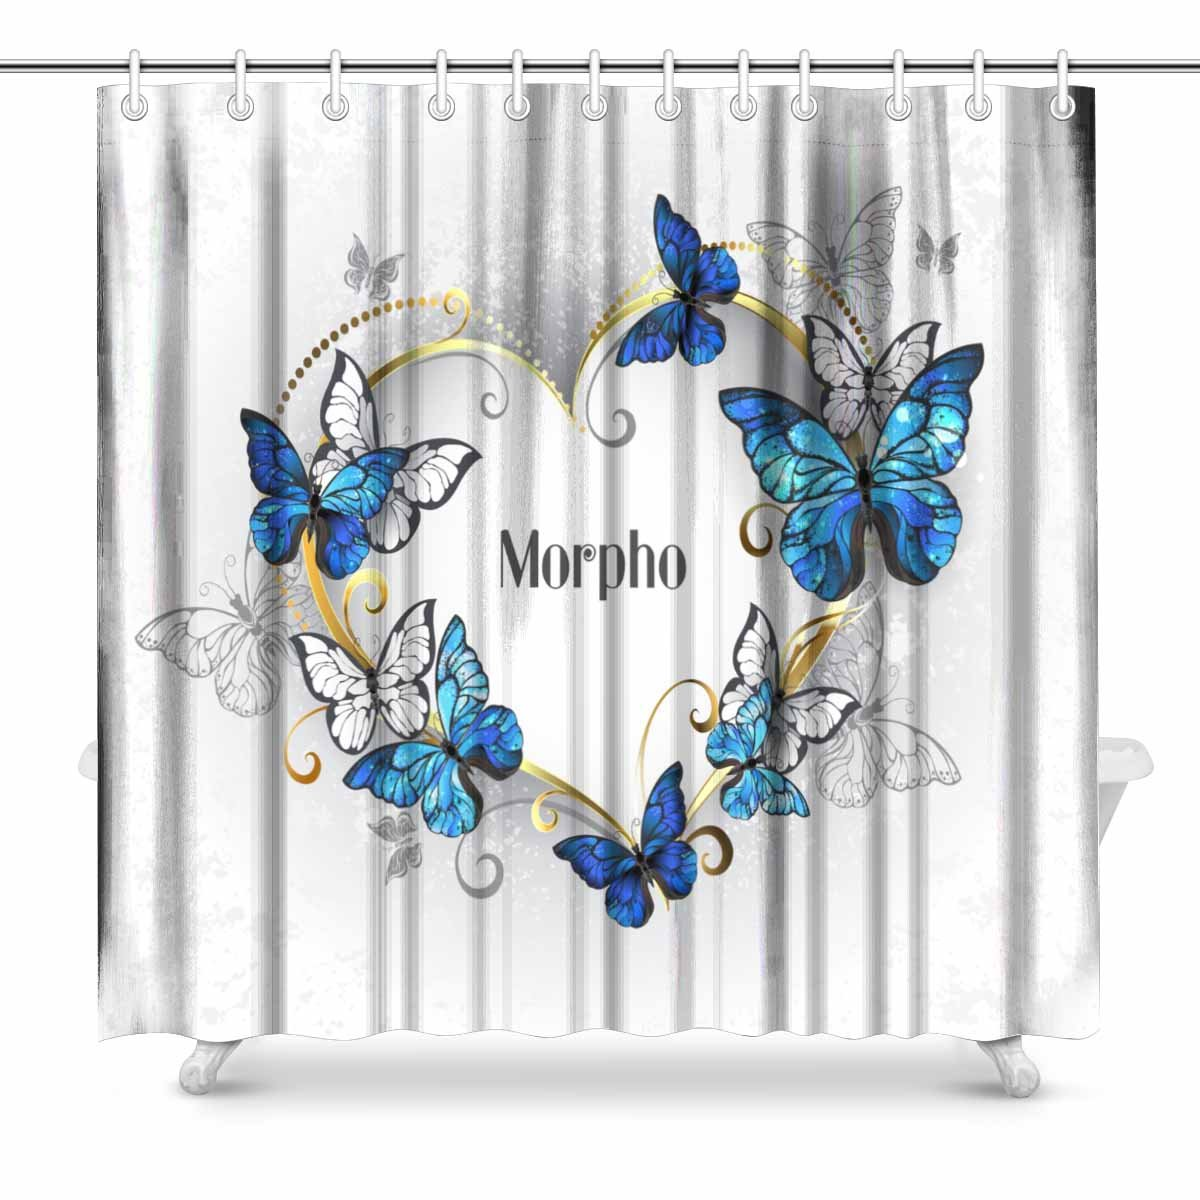 INTERESTPRINT Jeweled Golden Heart With Blue And White Realistic Butterflies Morpho Fabric Bathroom Shower Curtain Decor Set Hooks 72 X Inches